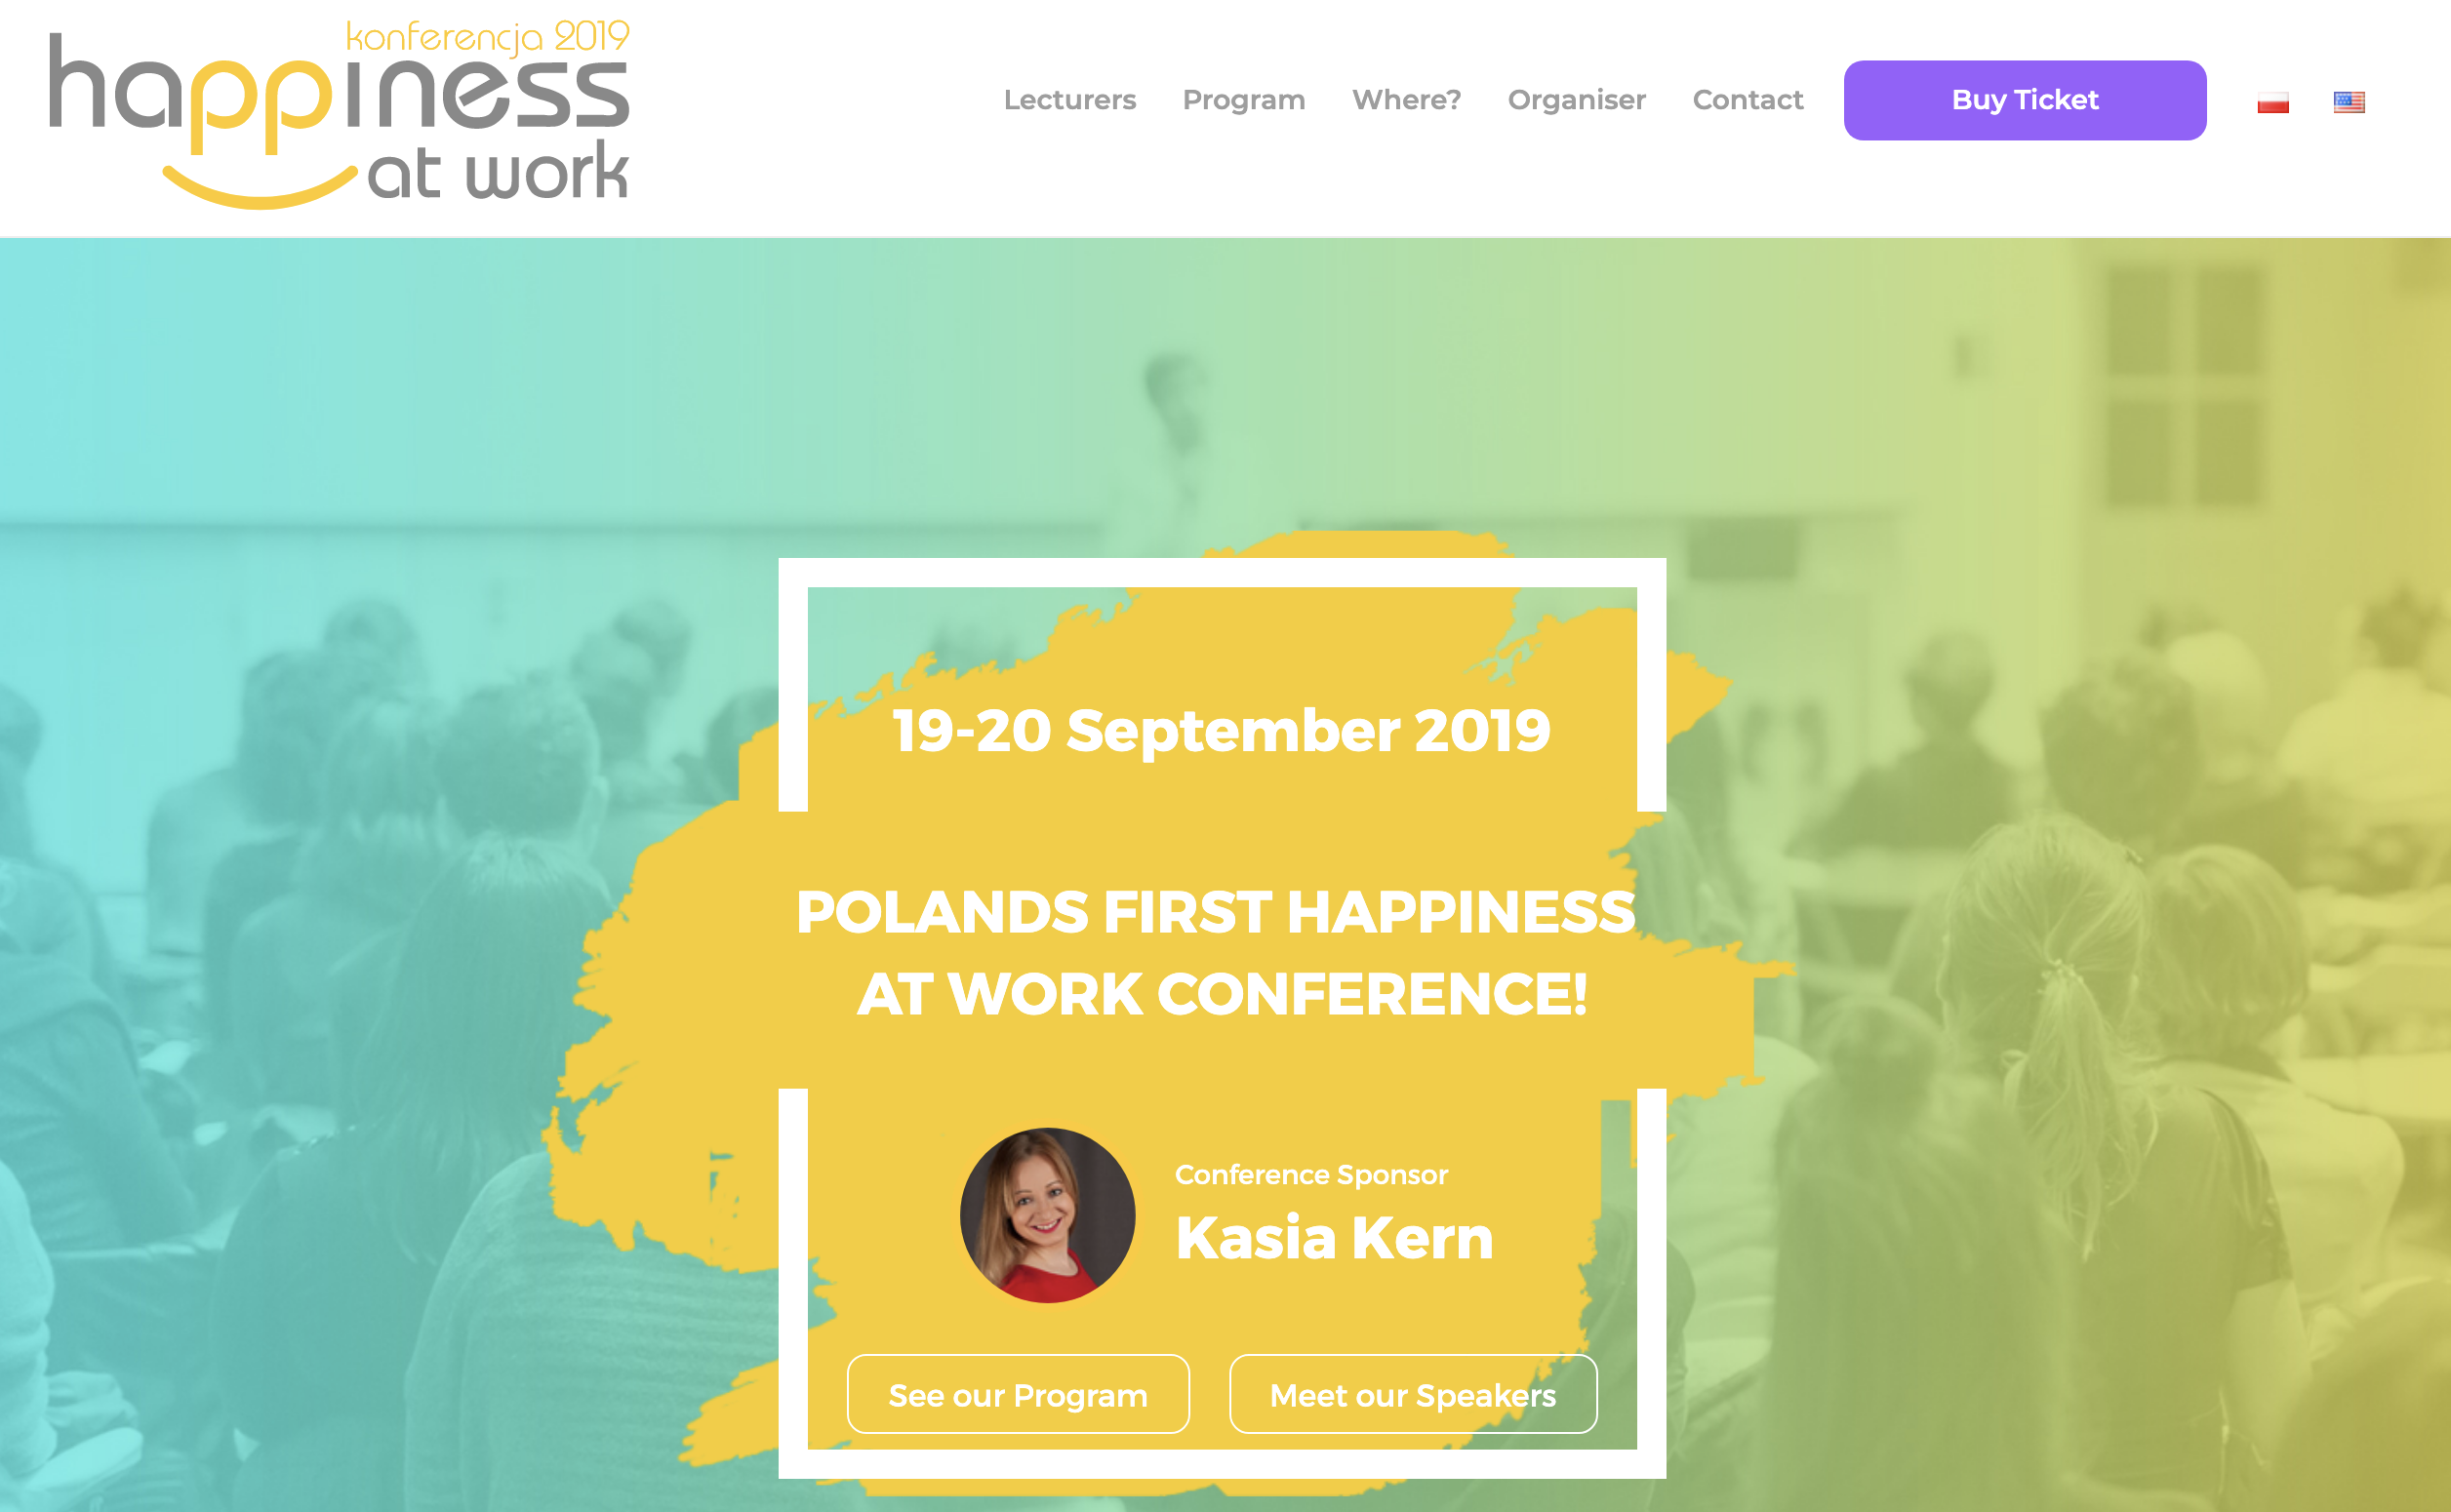 Happiness at Work Conference in Poland, first ever!